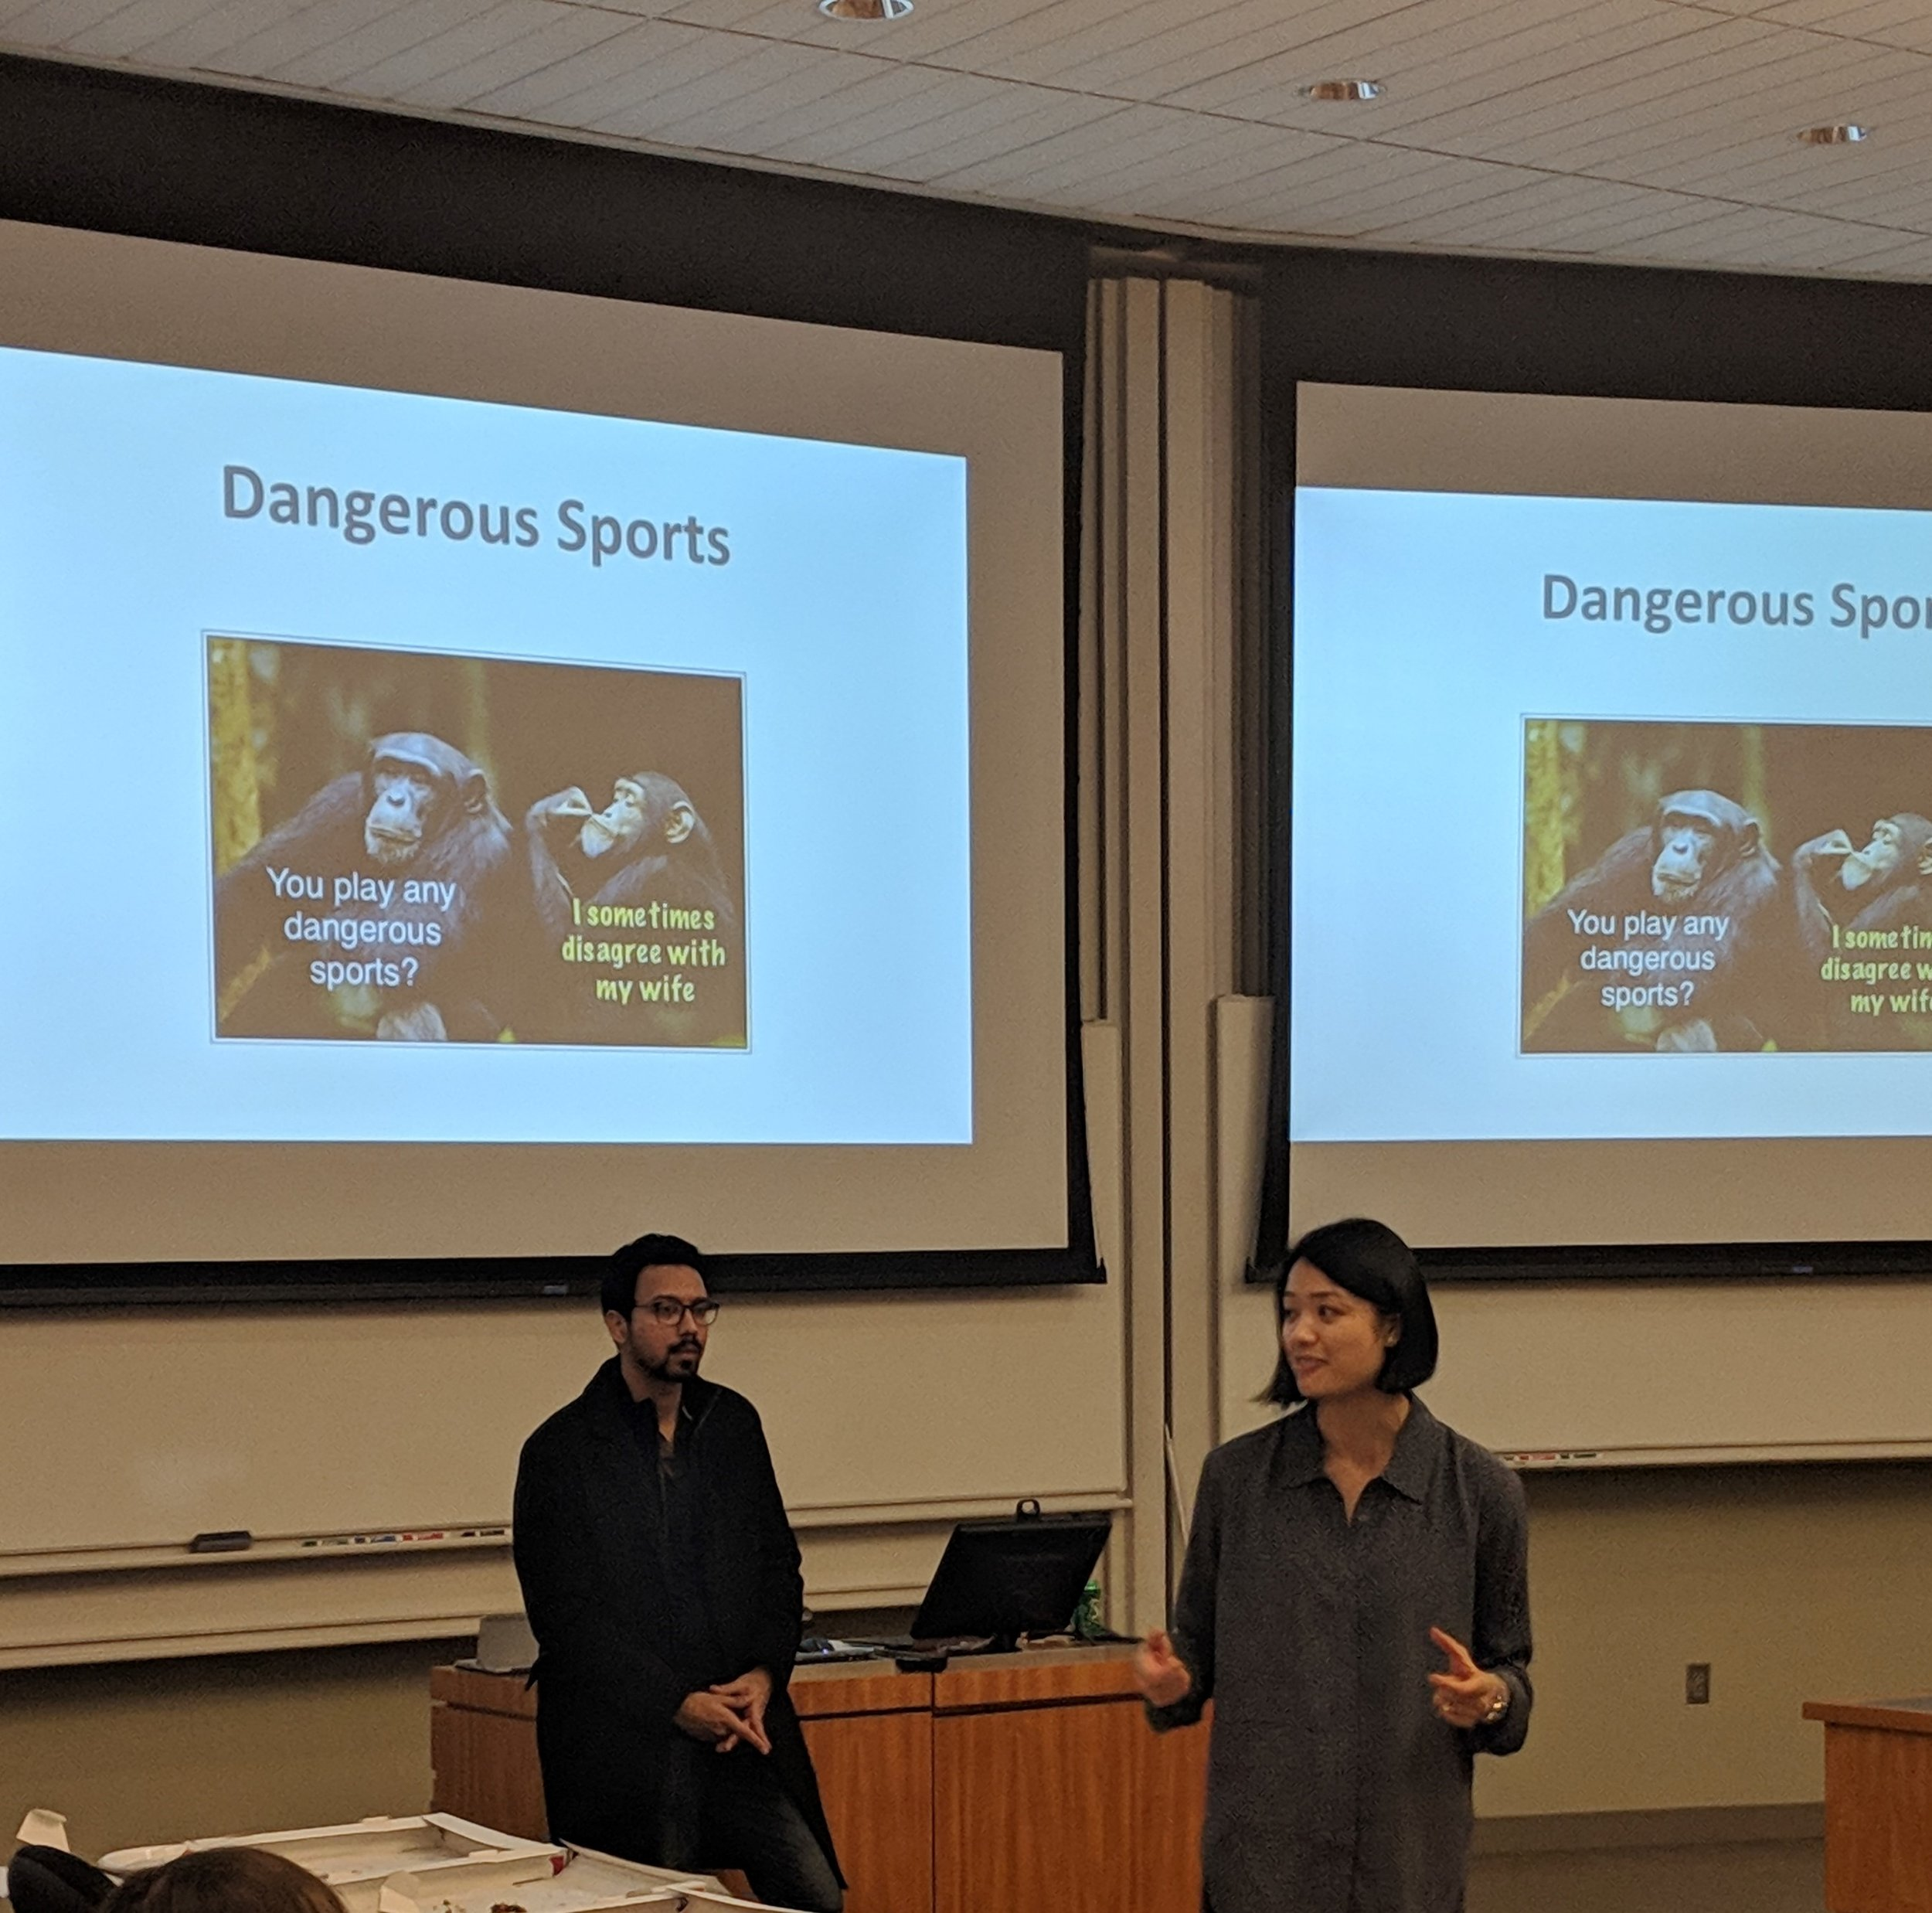 Nakul and Christina, PSCG co-chairs, demonstrate how to use pauses effectively